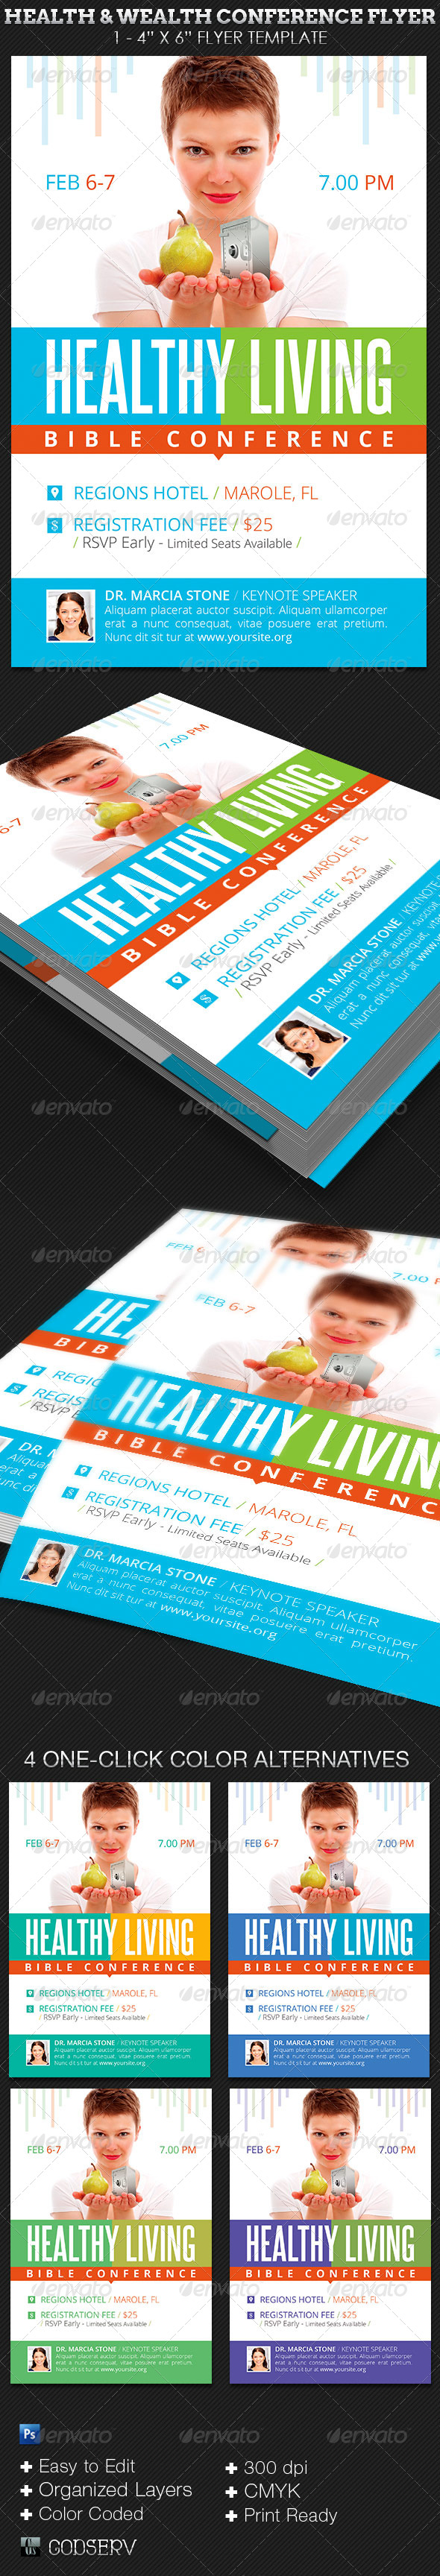 GraphicRiver Health and Wealth Church Conference Flyer Template 7606549